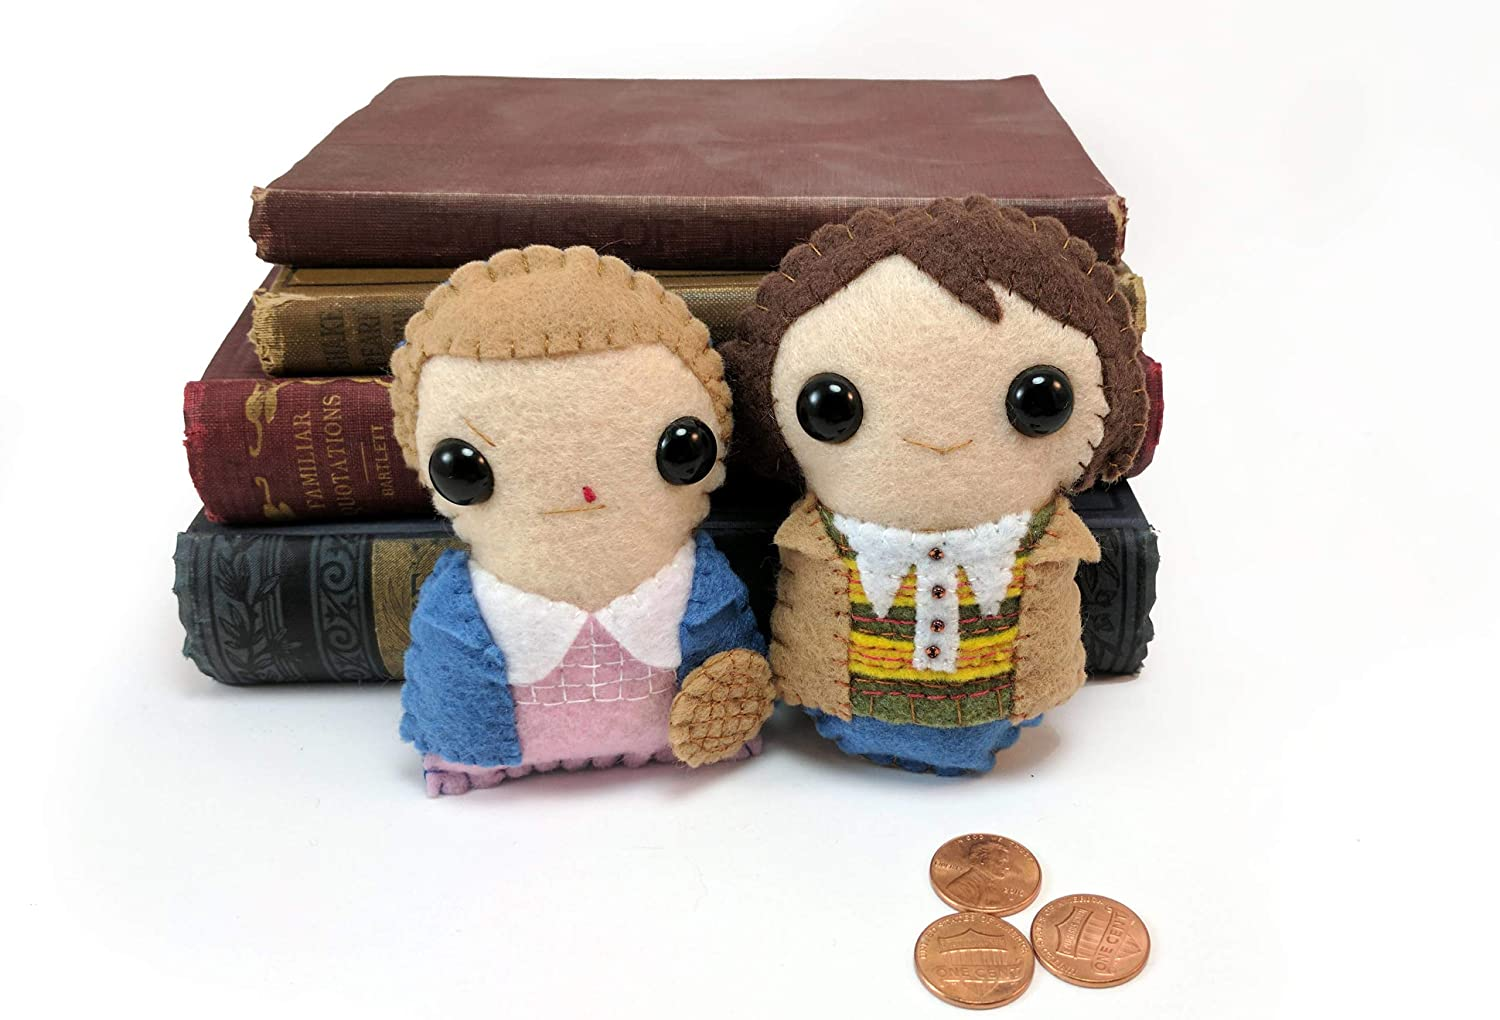 Stranger Things plushies Eleven and Mike made to order